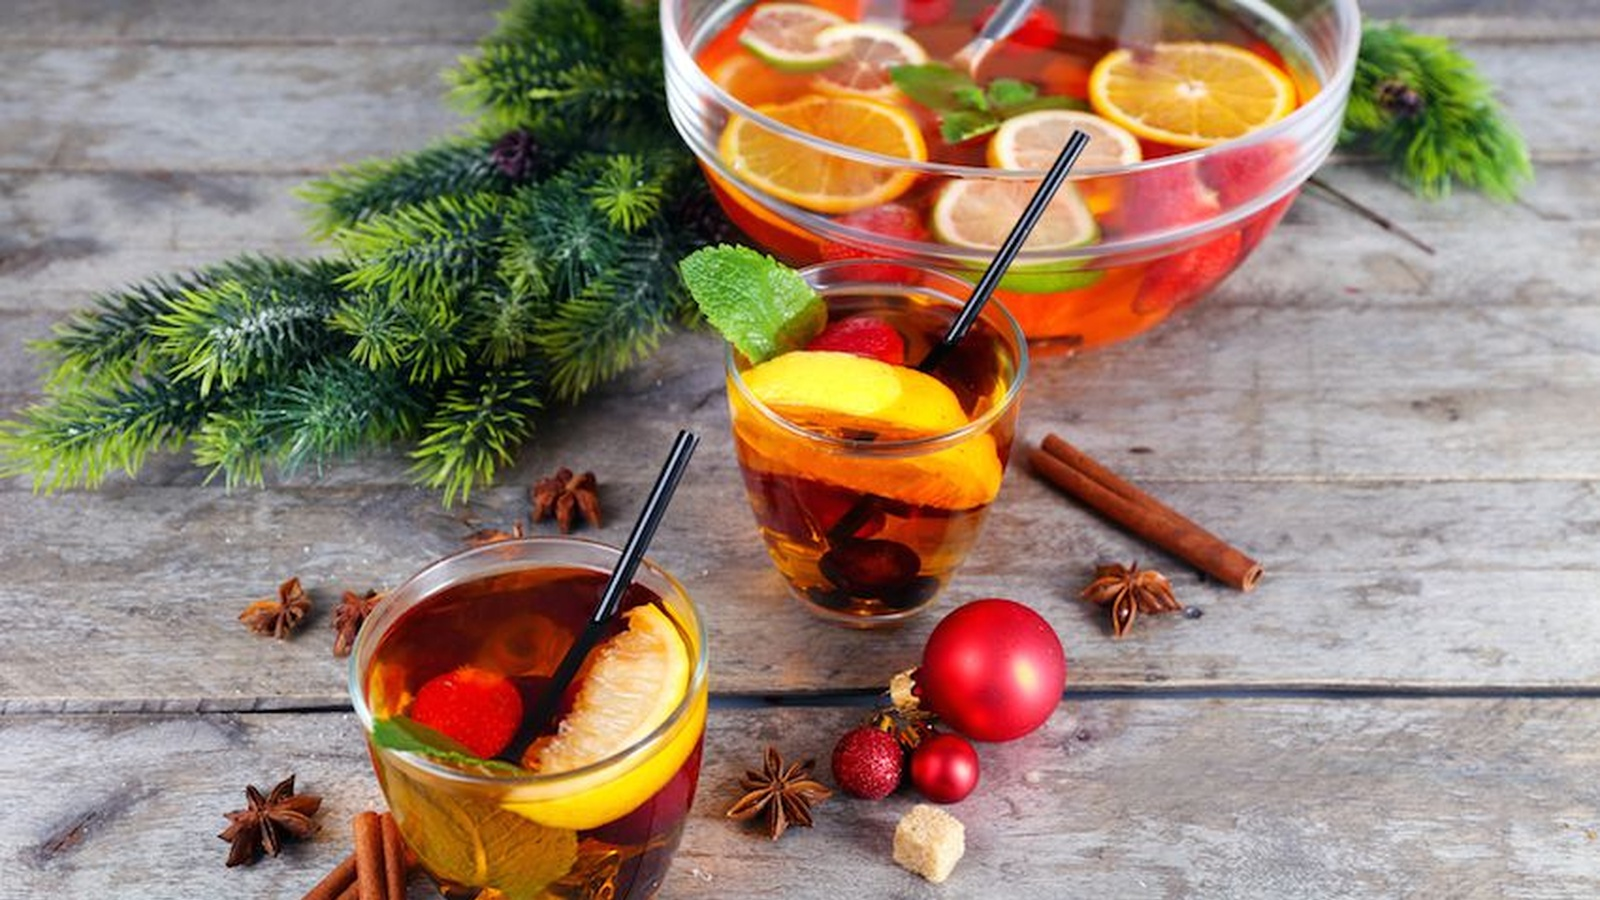 10 Ways To Healthify Your Christmas Day Menu